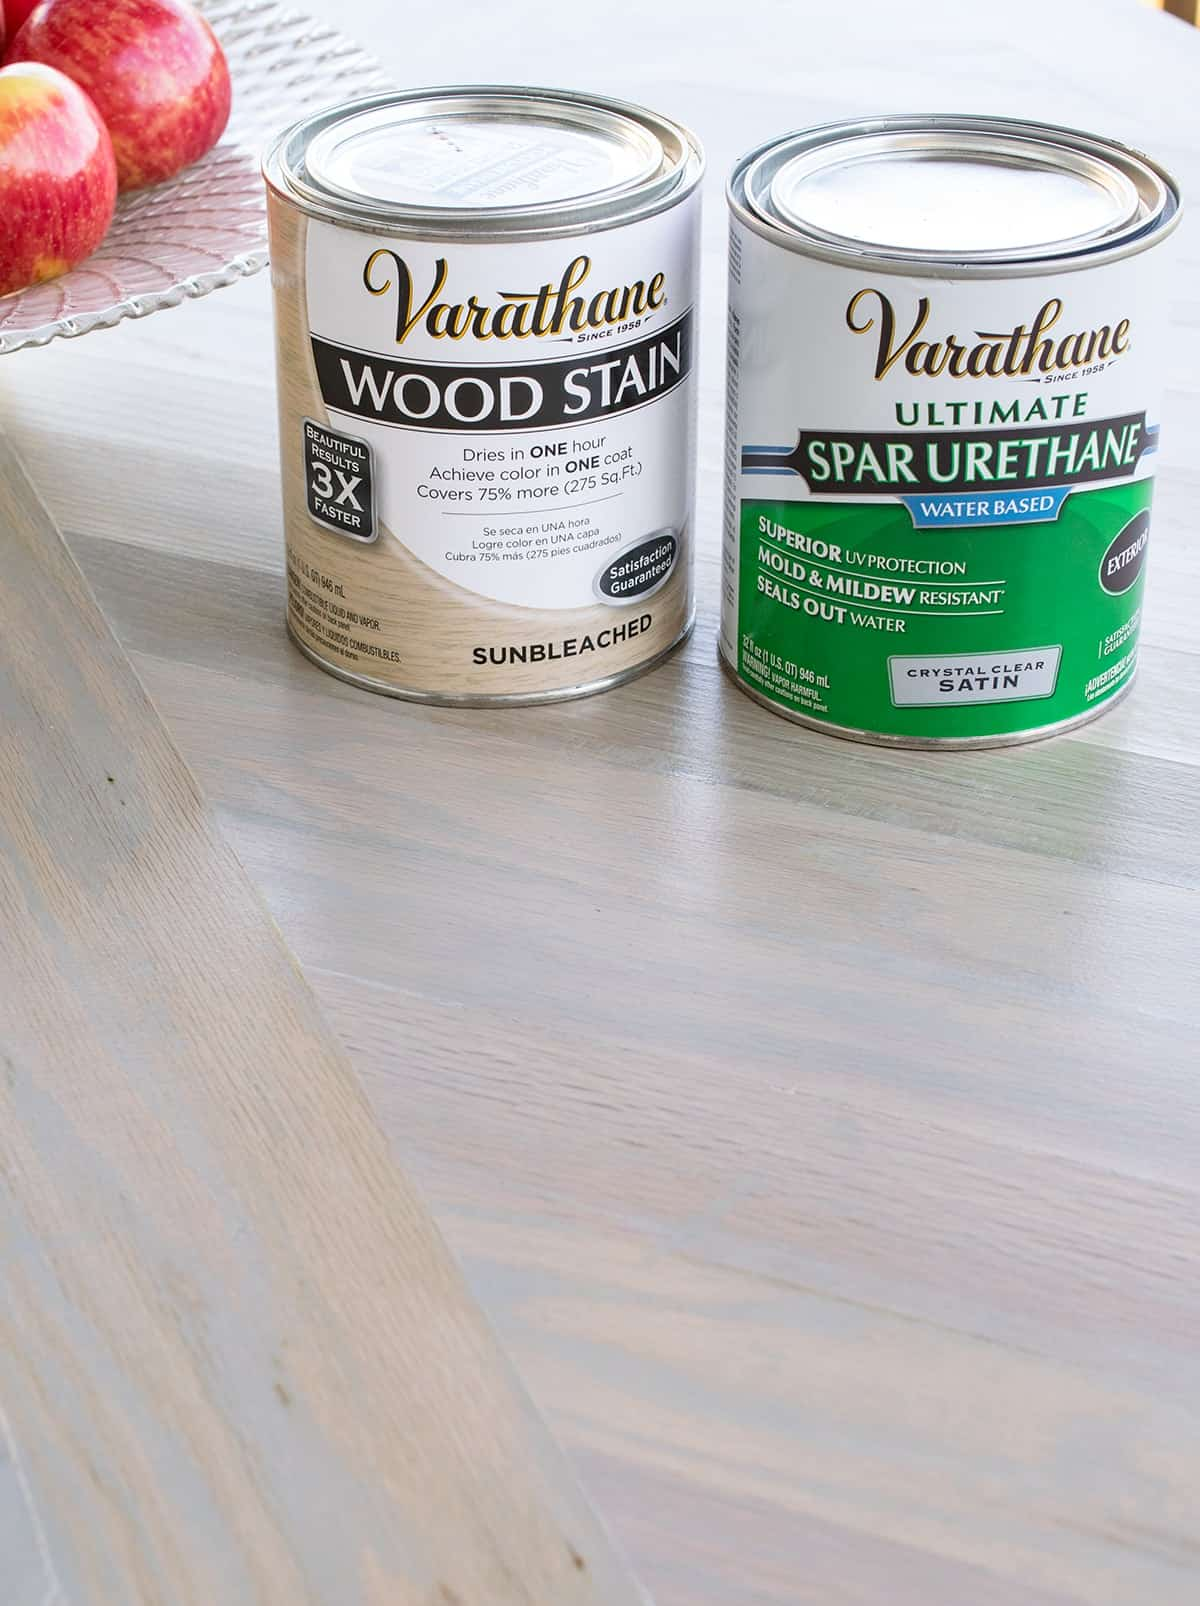 Varathane wood stain and spar urethane product cans on table top with finished product applied.